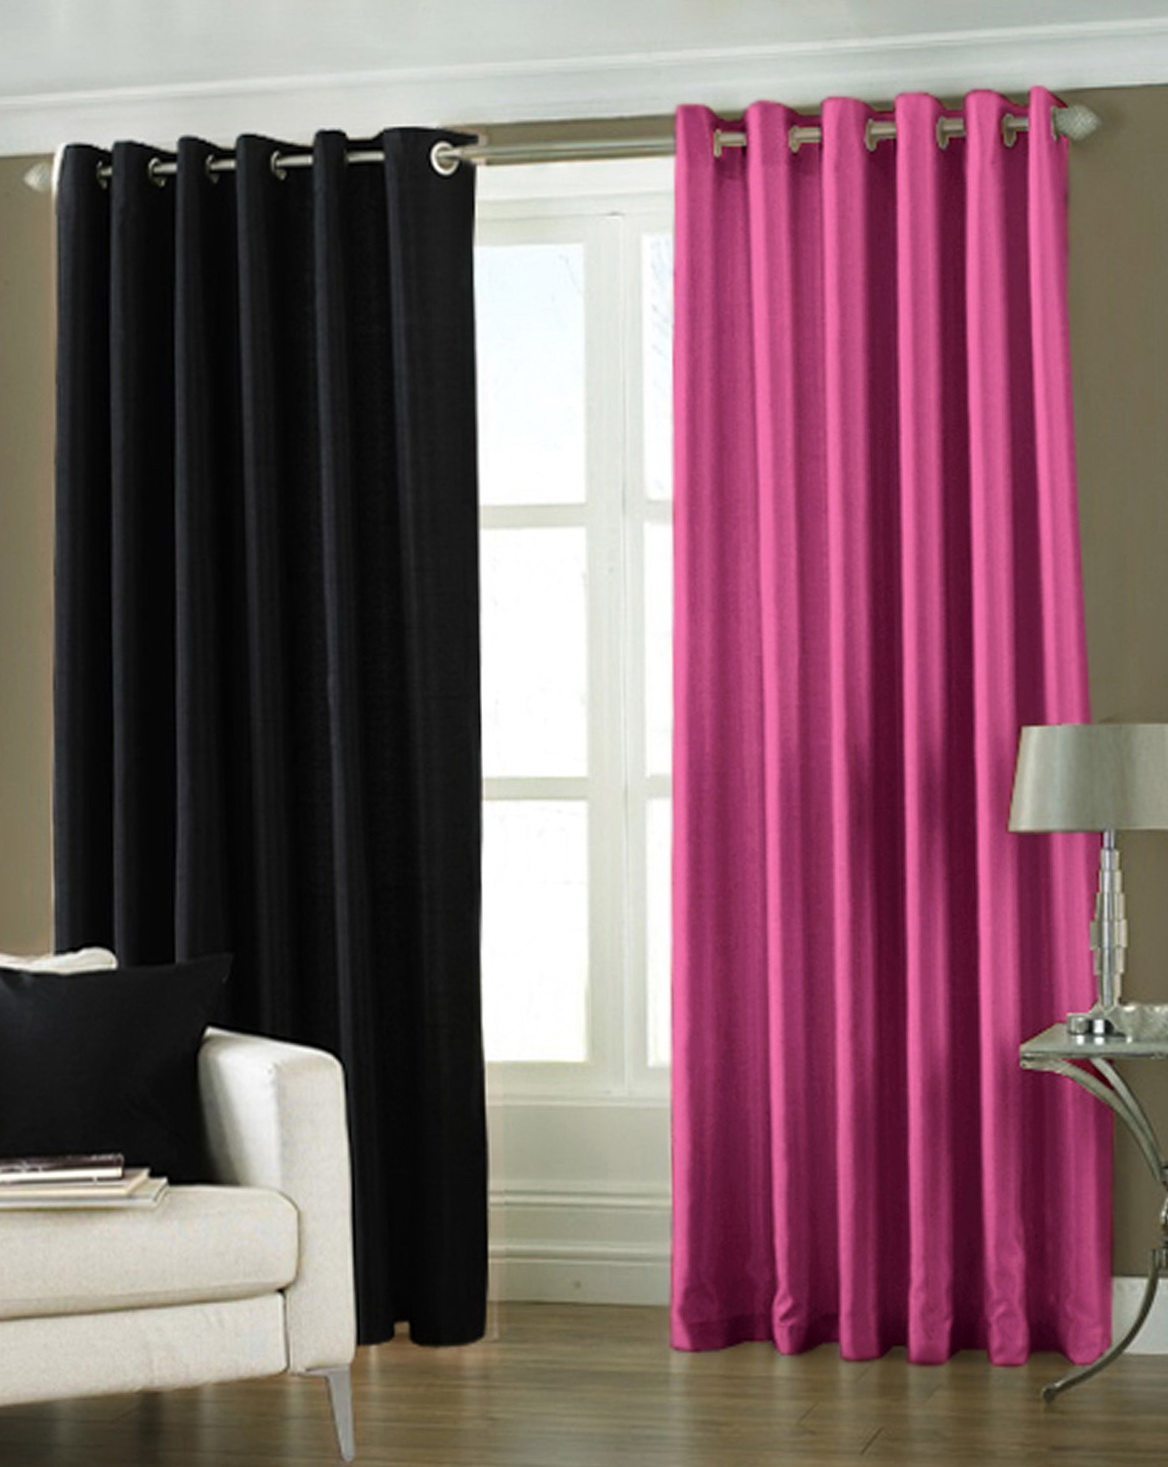 Buy curtains online amazon home design ideas for Where to buy curtains online